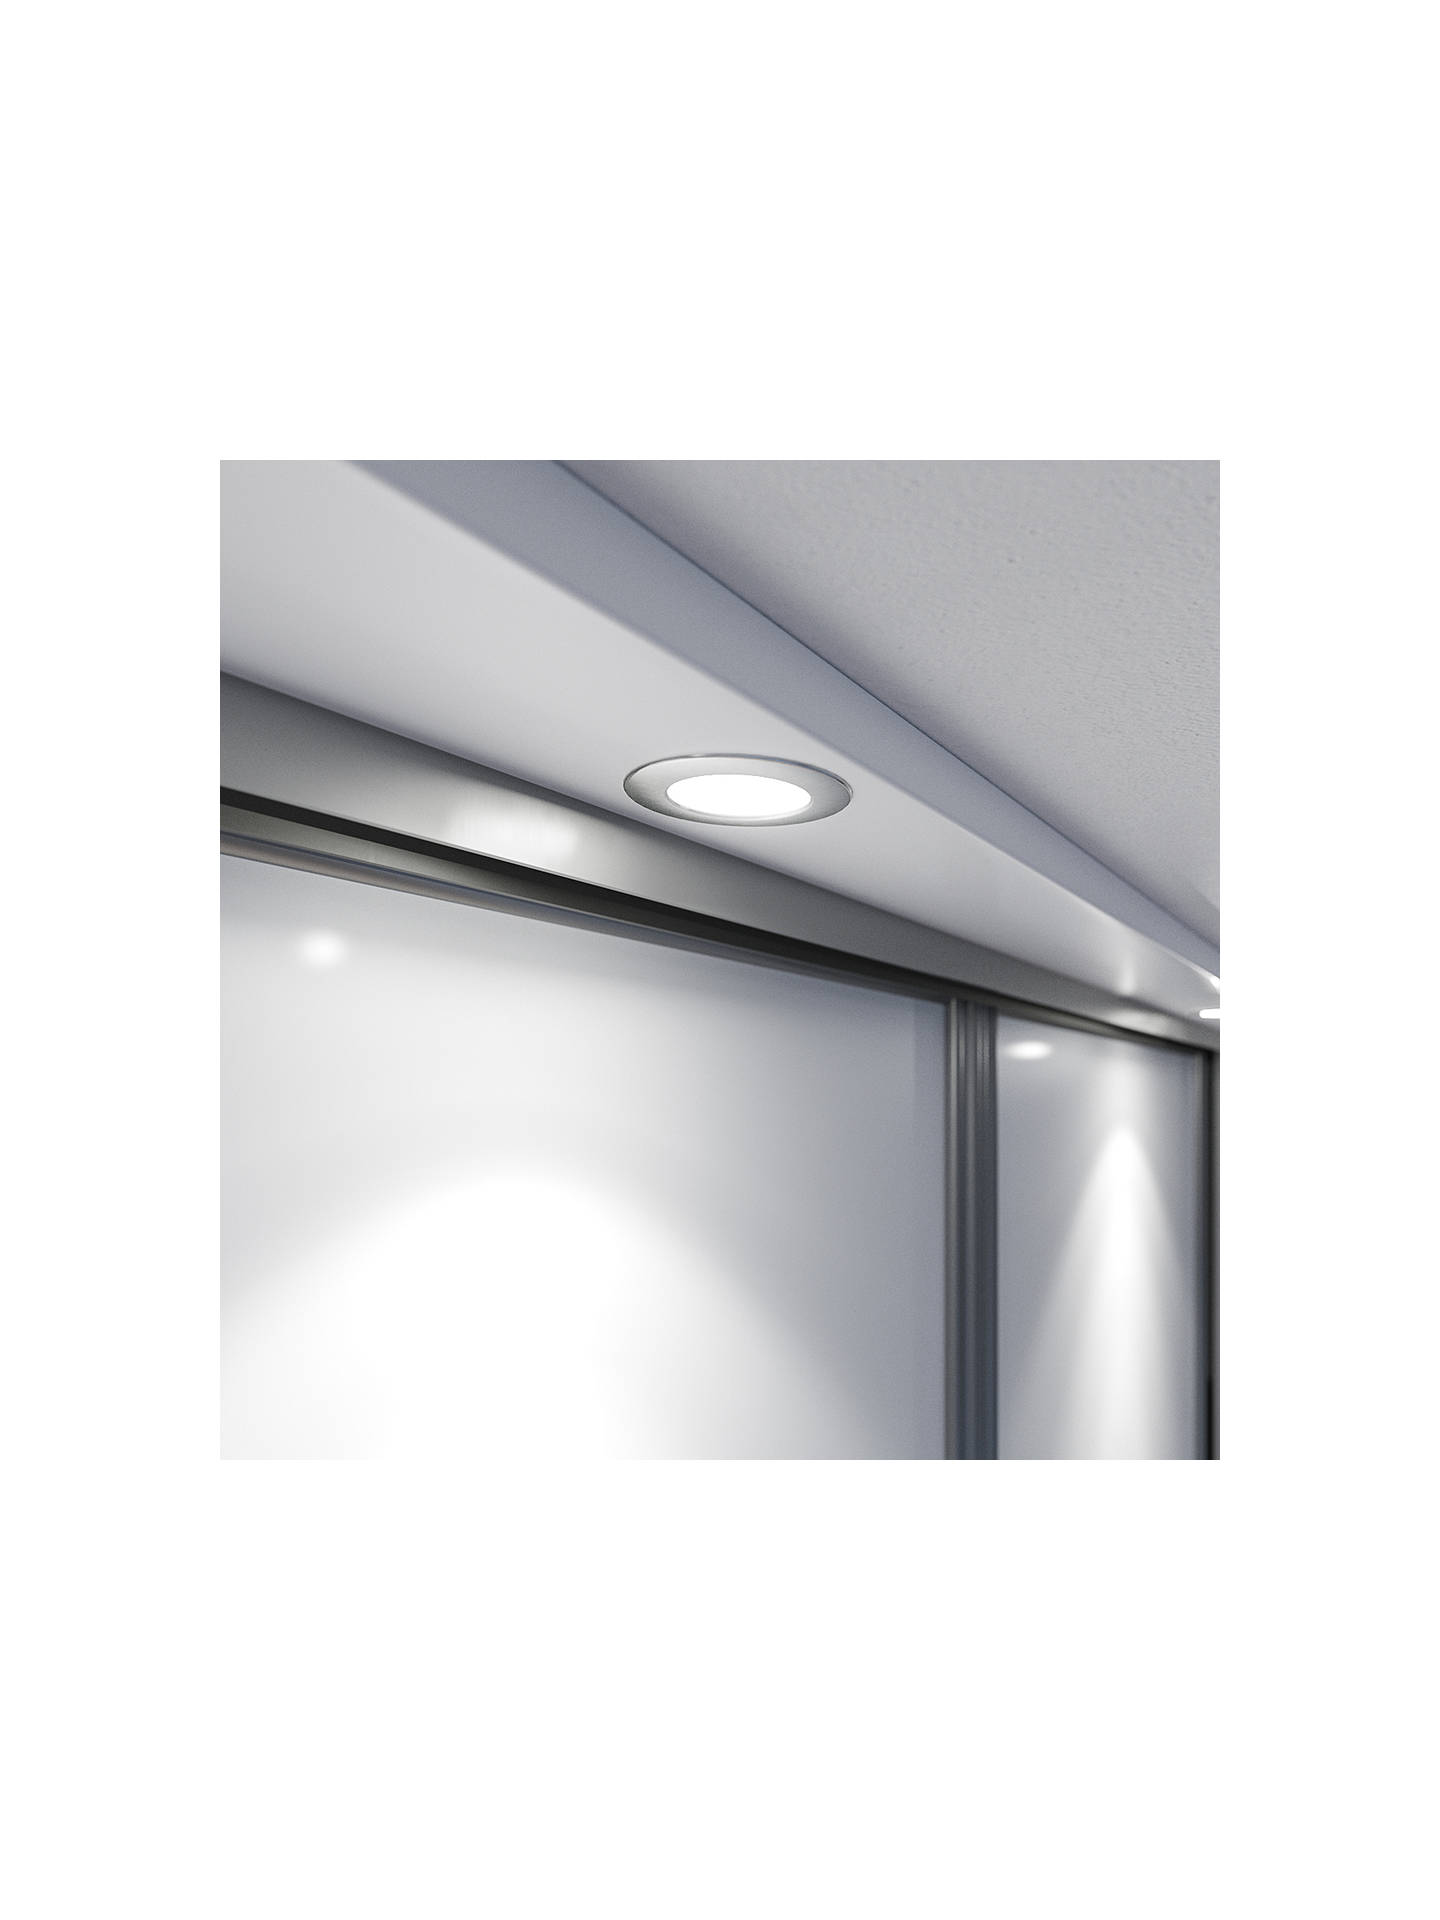 BuyJohn Lewis & Partners Lambda Surface/Recessed Light Kit, Pack of 2 Online at johnlewis.com